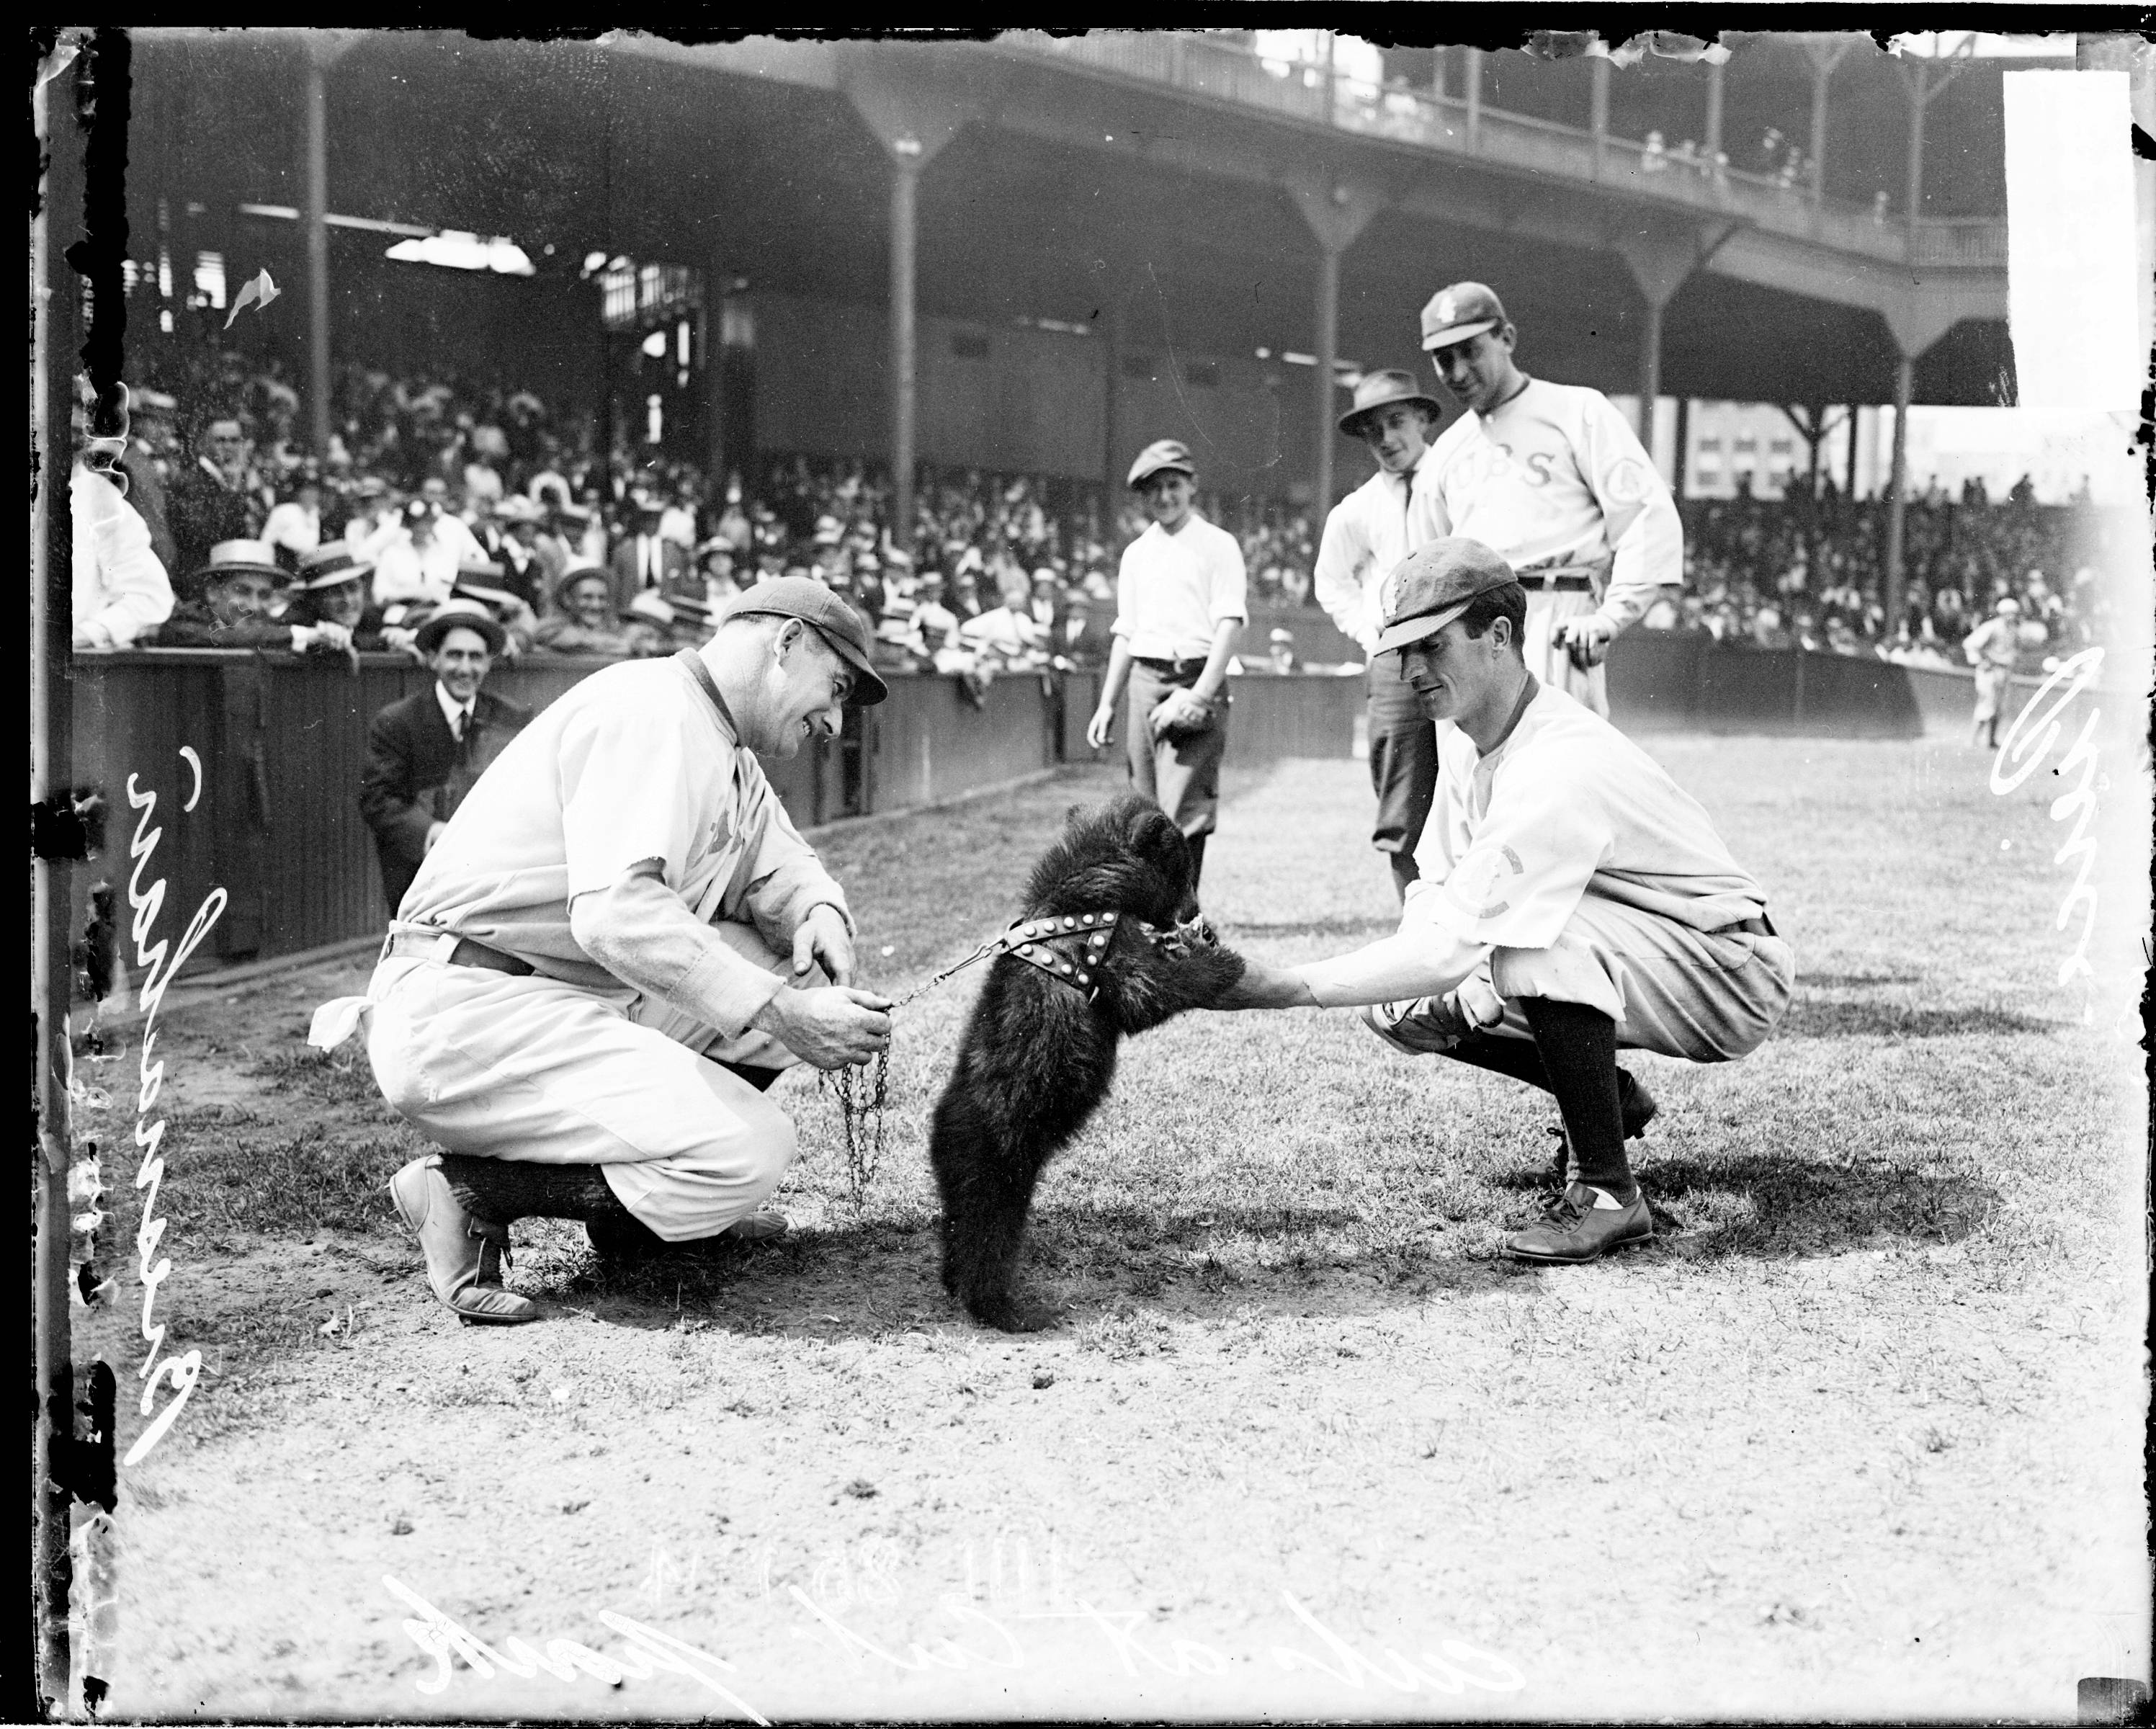 This Aug. 25, 1916, photo shows National League's Chicago Cubs baseball player George Pierce petting a bear cub while Cubs player Roger Bresnahan holds the cub's leash at the first National League game at Weeghman Park in Chicago, later to be named Wrigley Field.